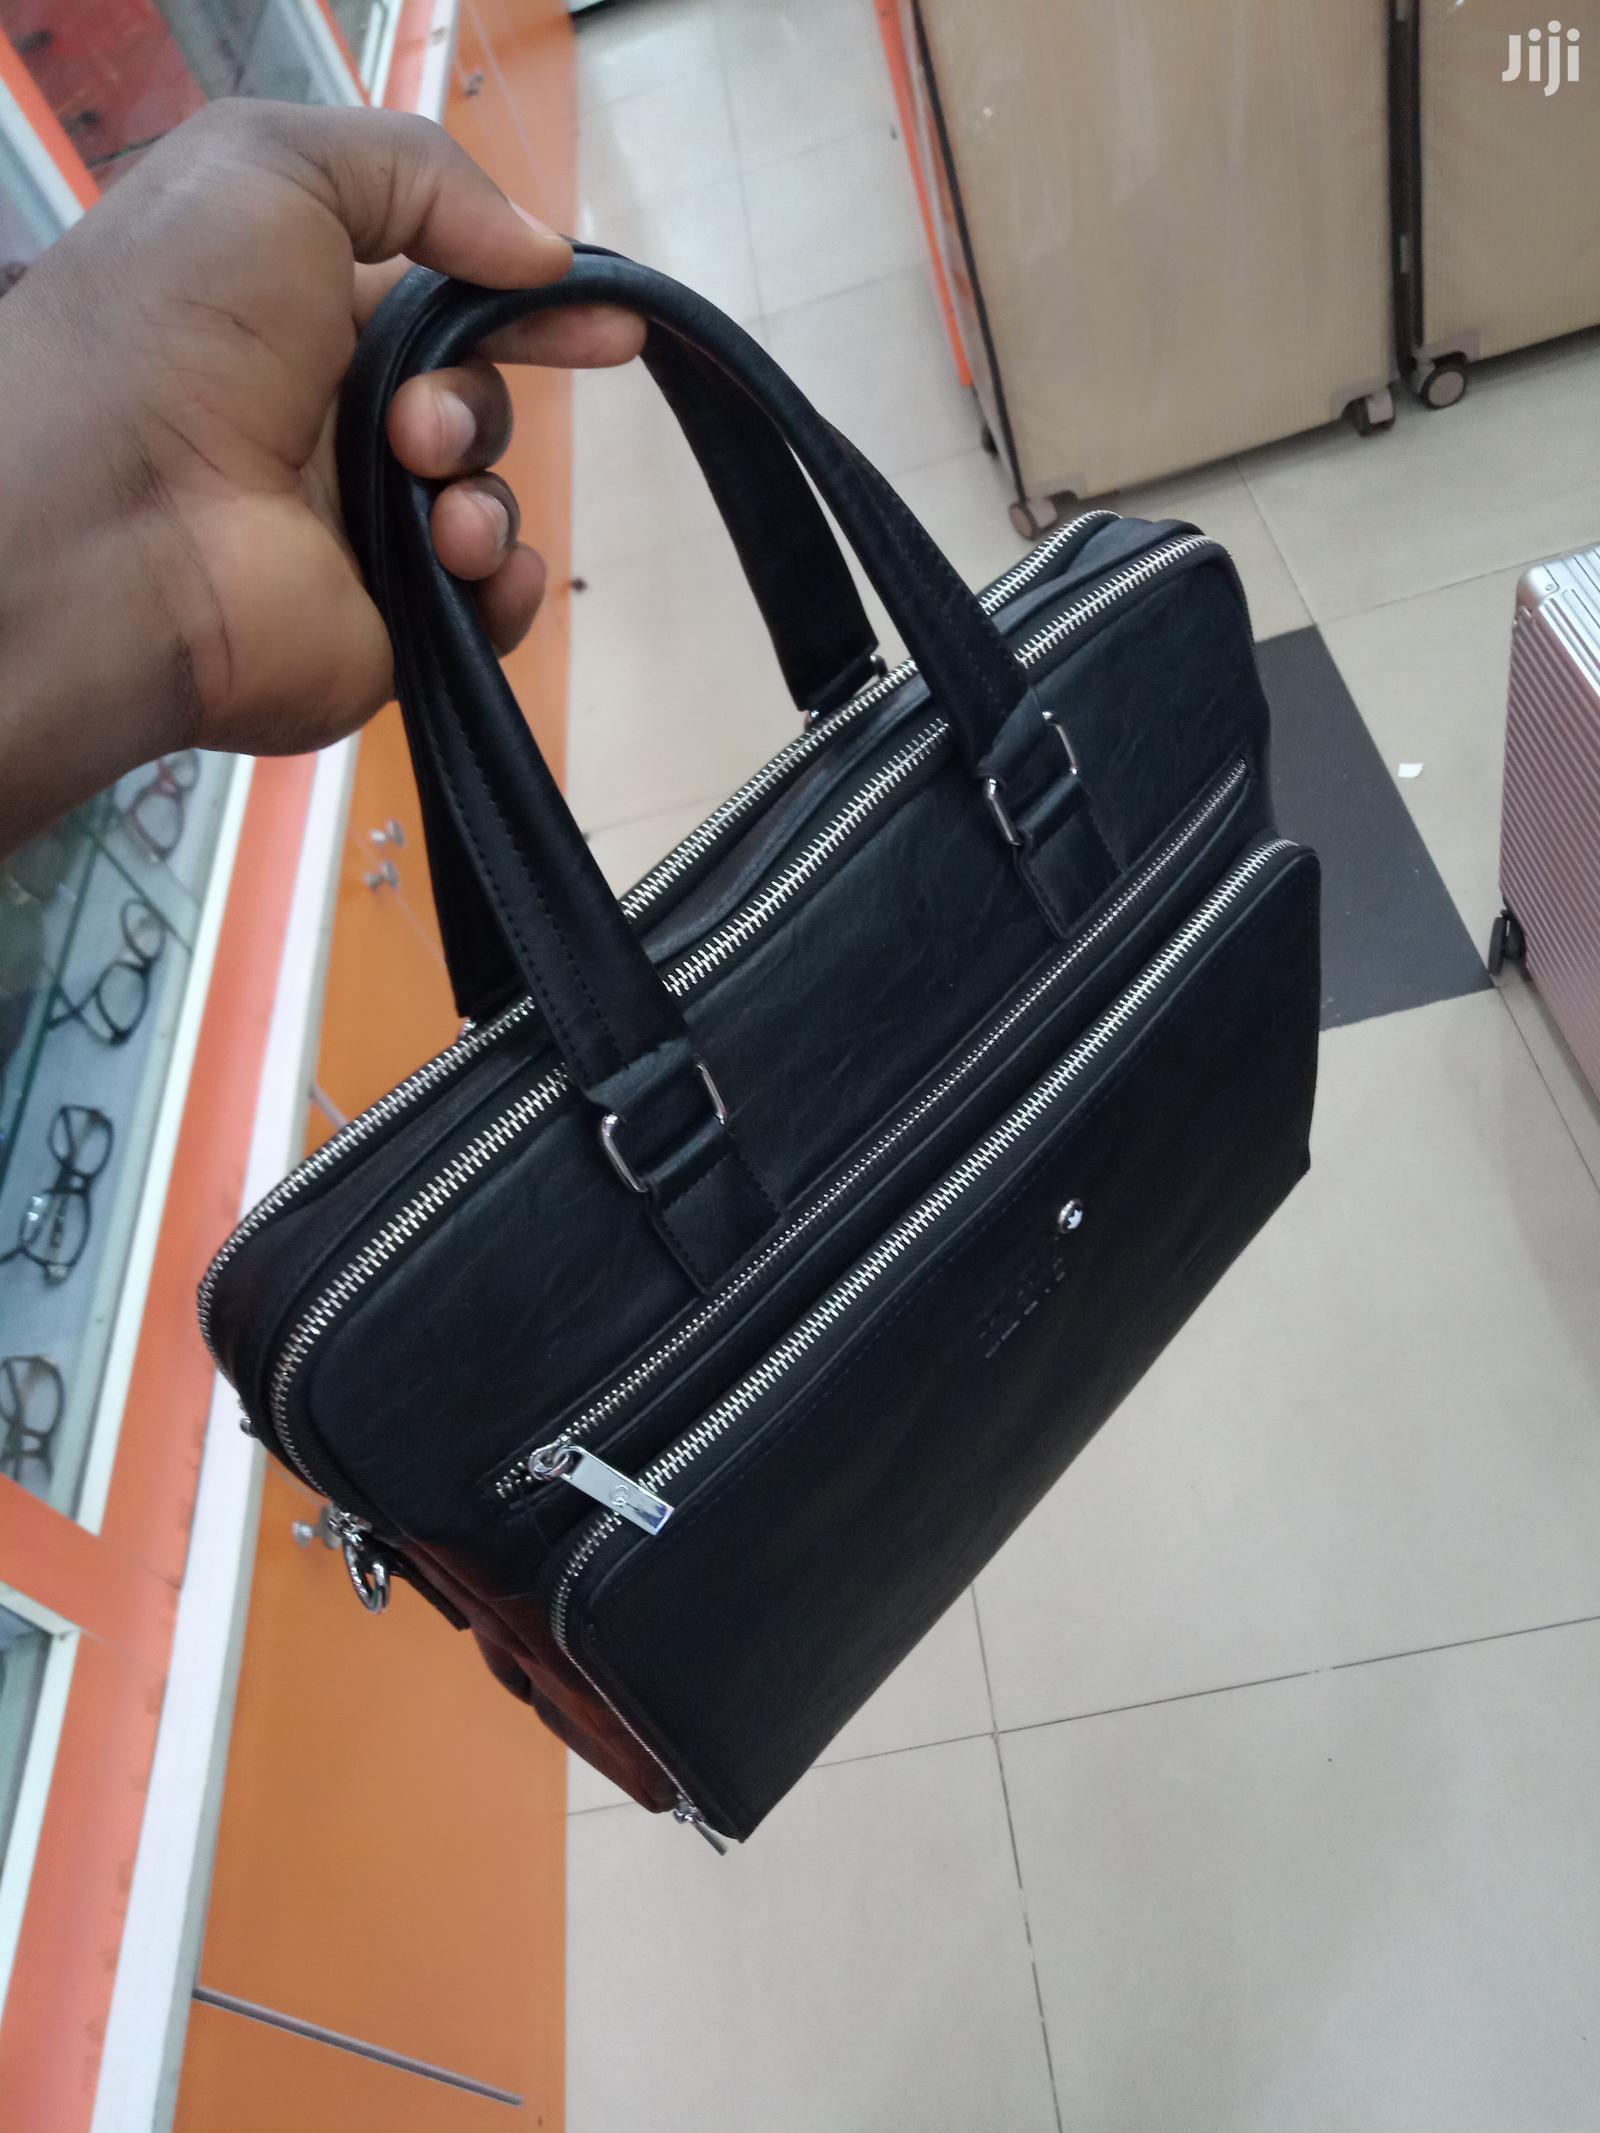 Quality Pure Leather Labtop Bag And School Bag Available | Babies & Kids Accessories for sale in Surulere, Lagos State, Nigeria